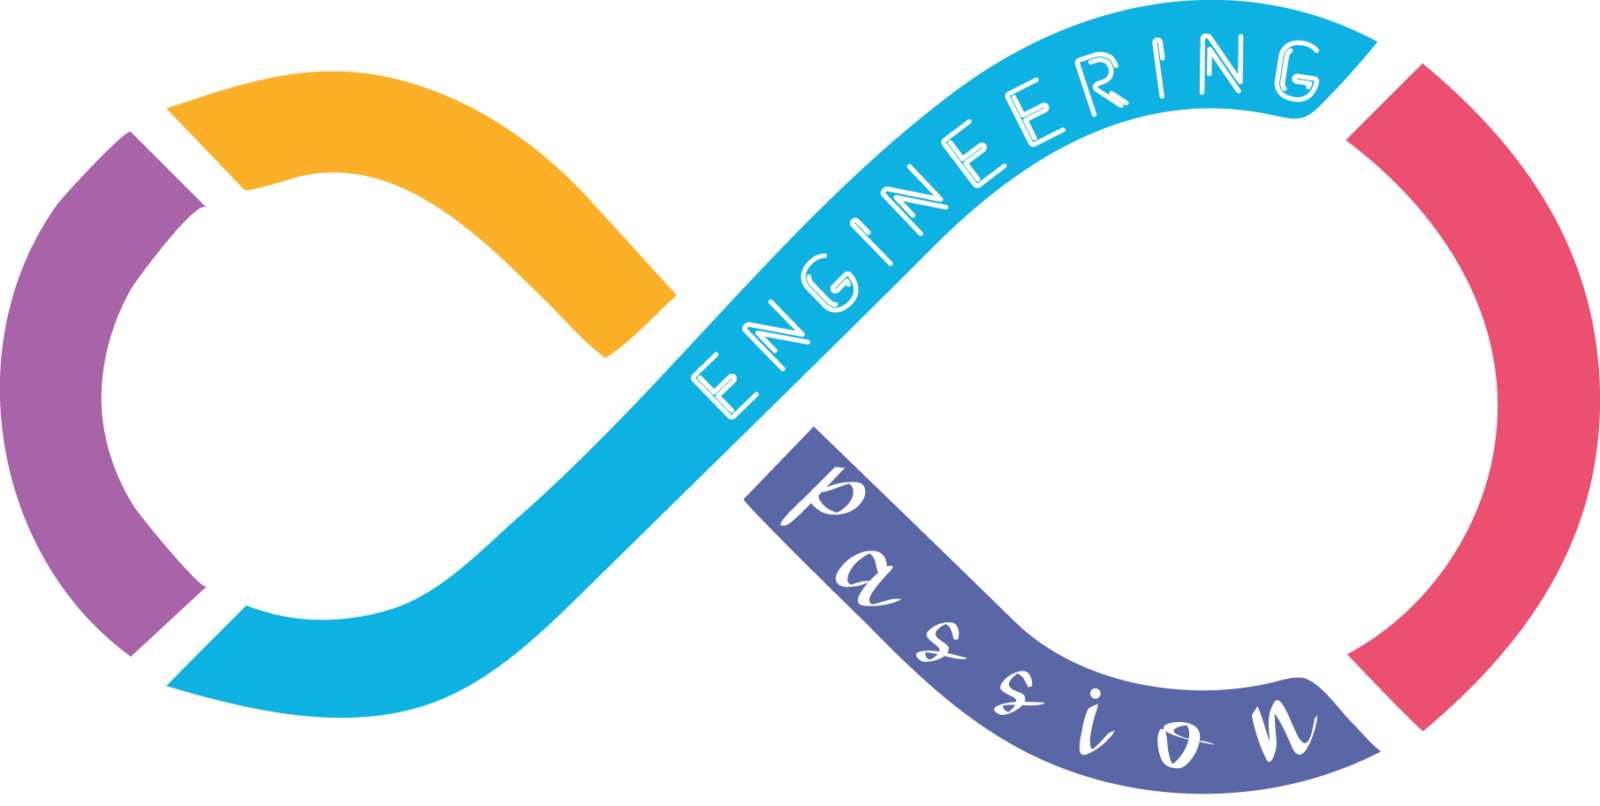 EngineeringPassion.com Logo